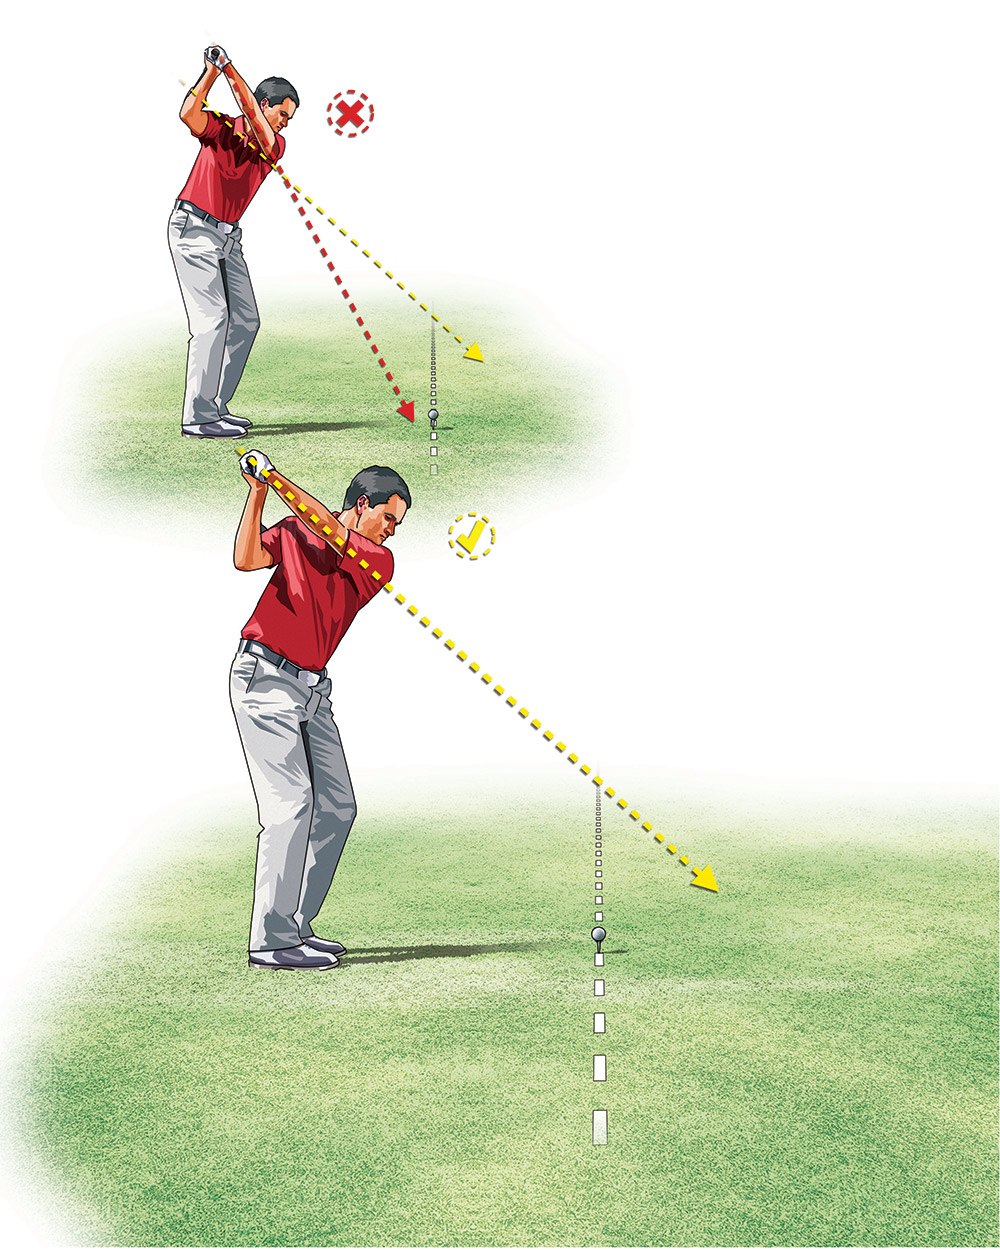 You'll know you're on plane when your left arm matches your shoulder line and your left elbow points outside your ball.